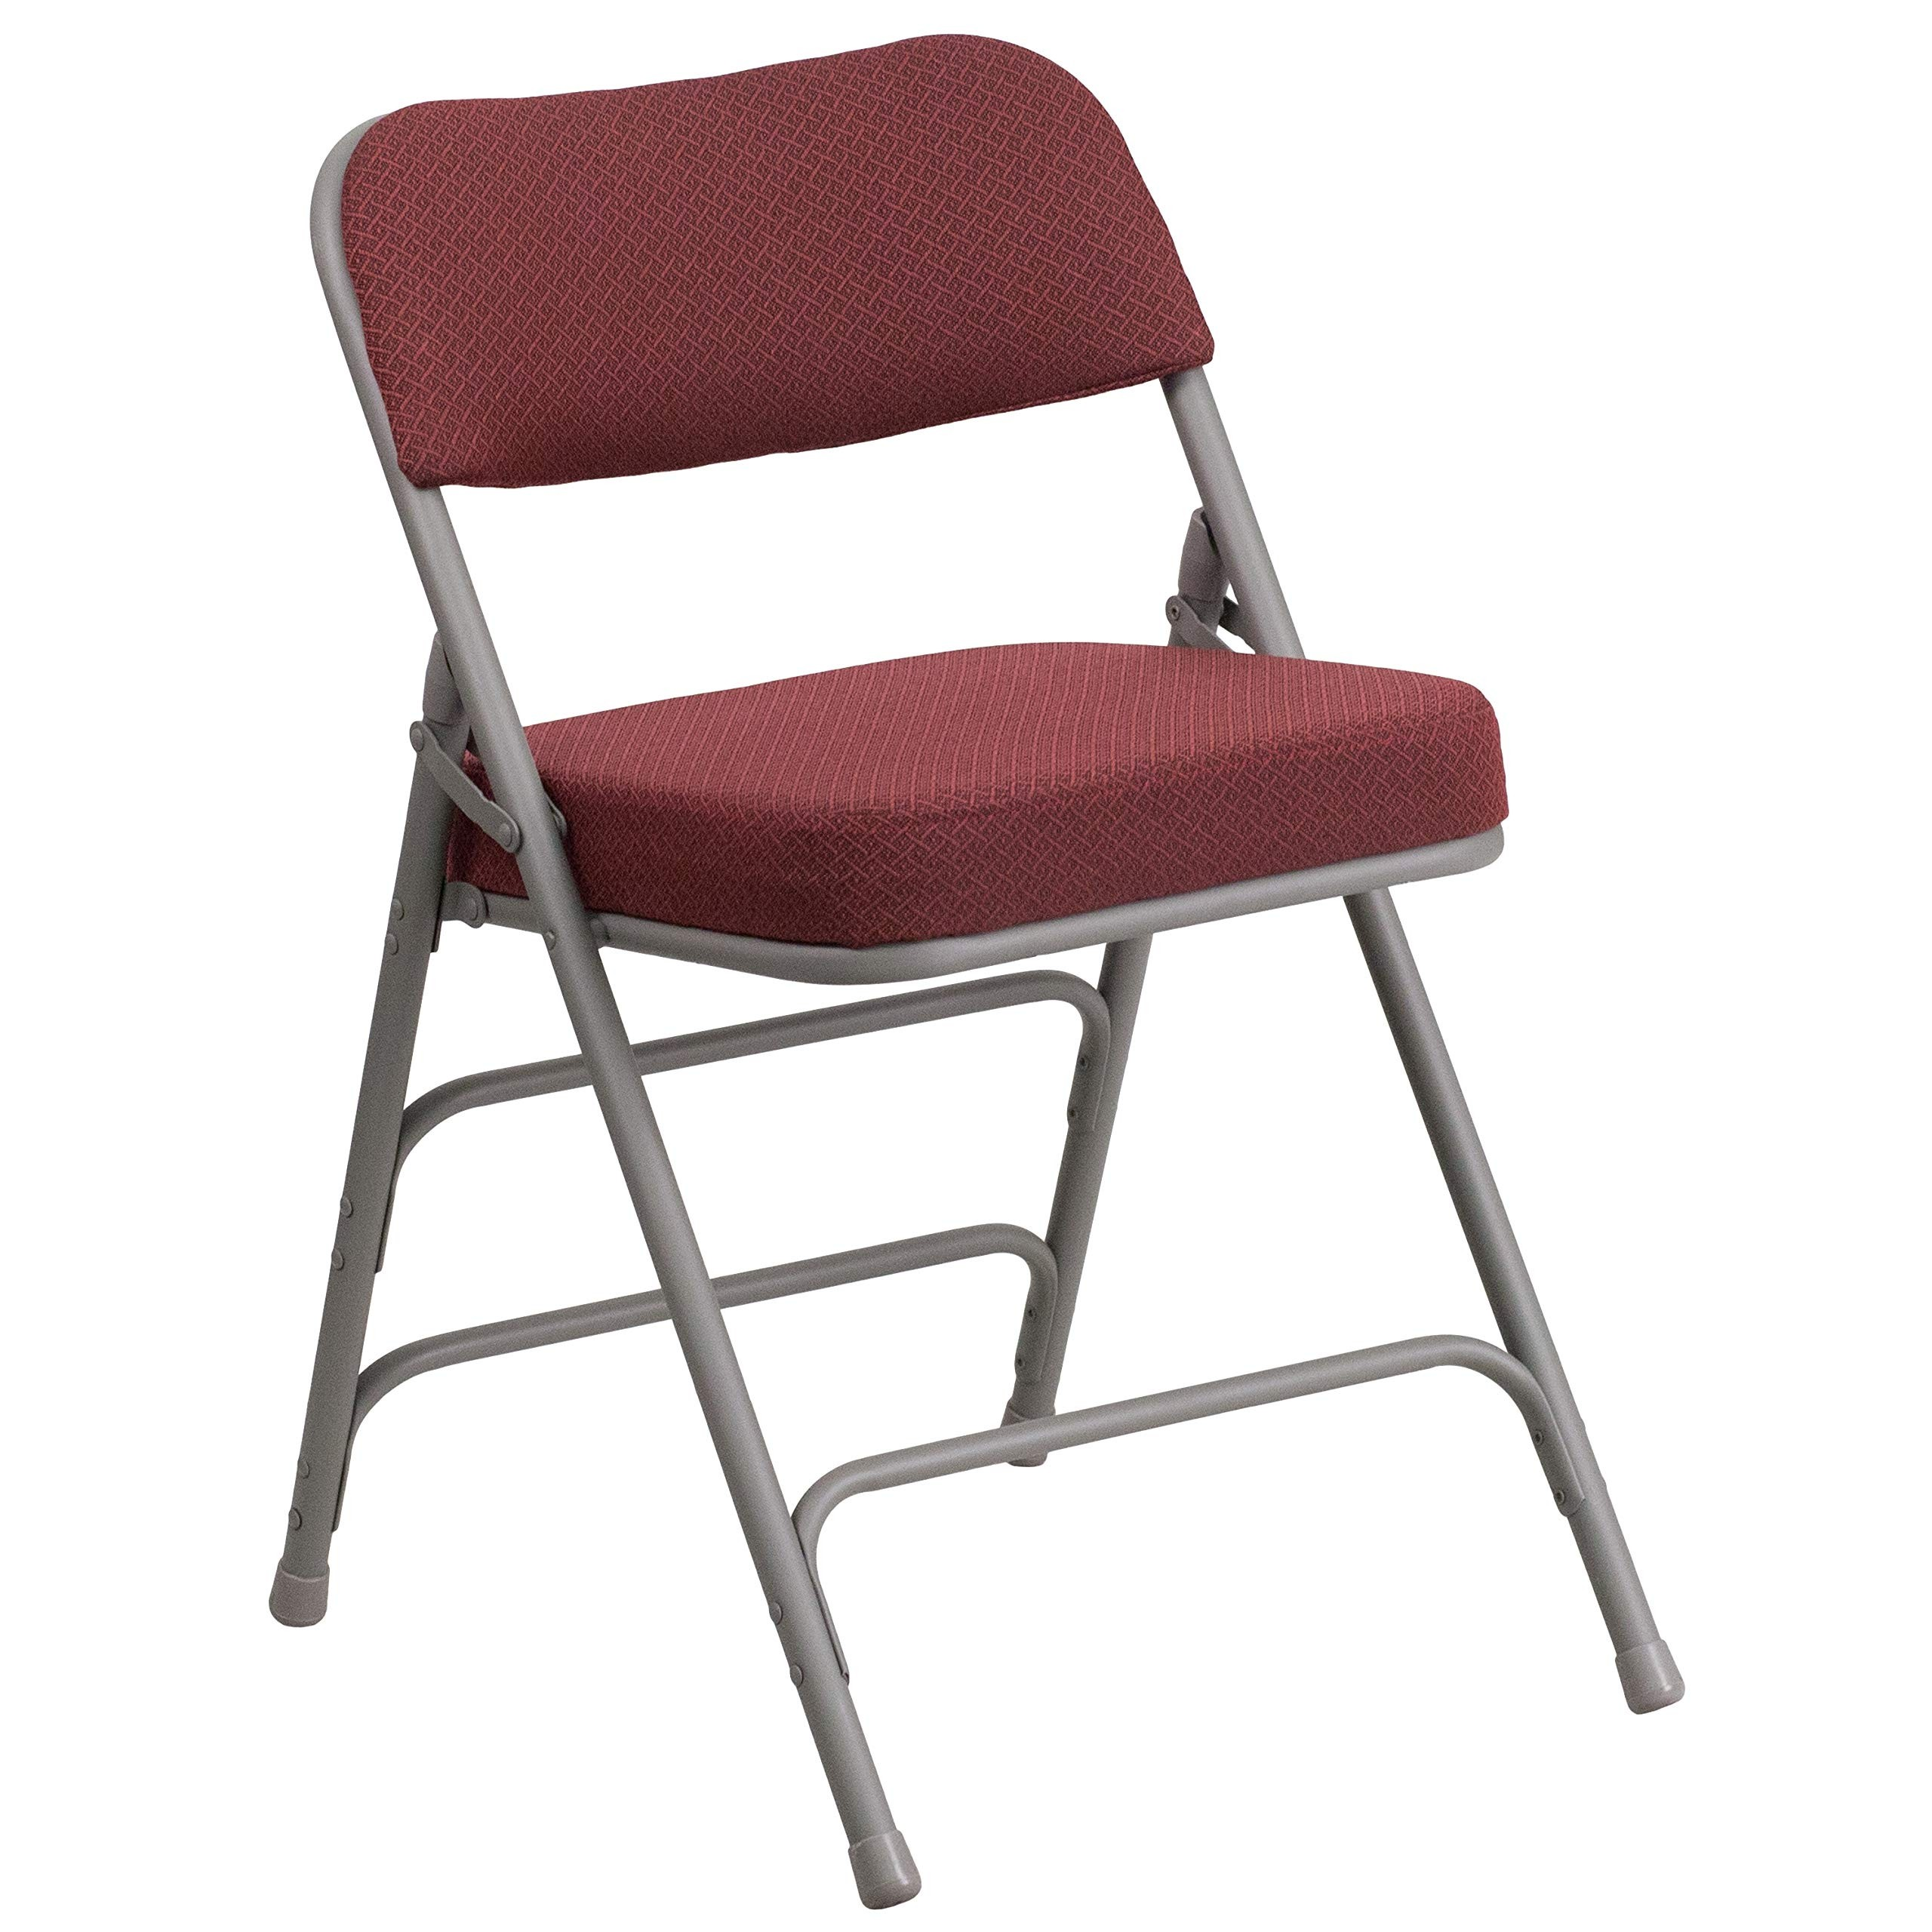 upholstered folding chairs uk faux bamboo australia dining ideas on foter flash furniture ha mc320af gry gg hercules series premium curved triple braced and